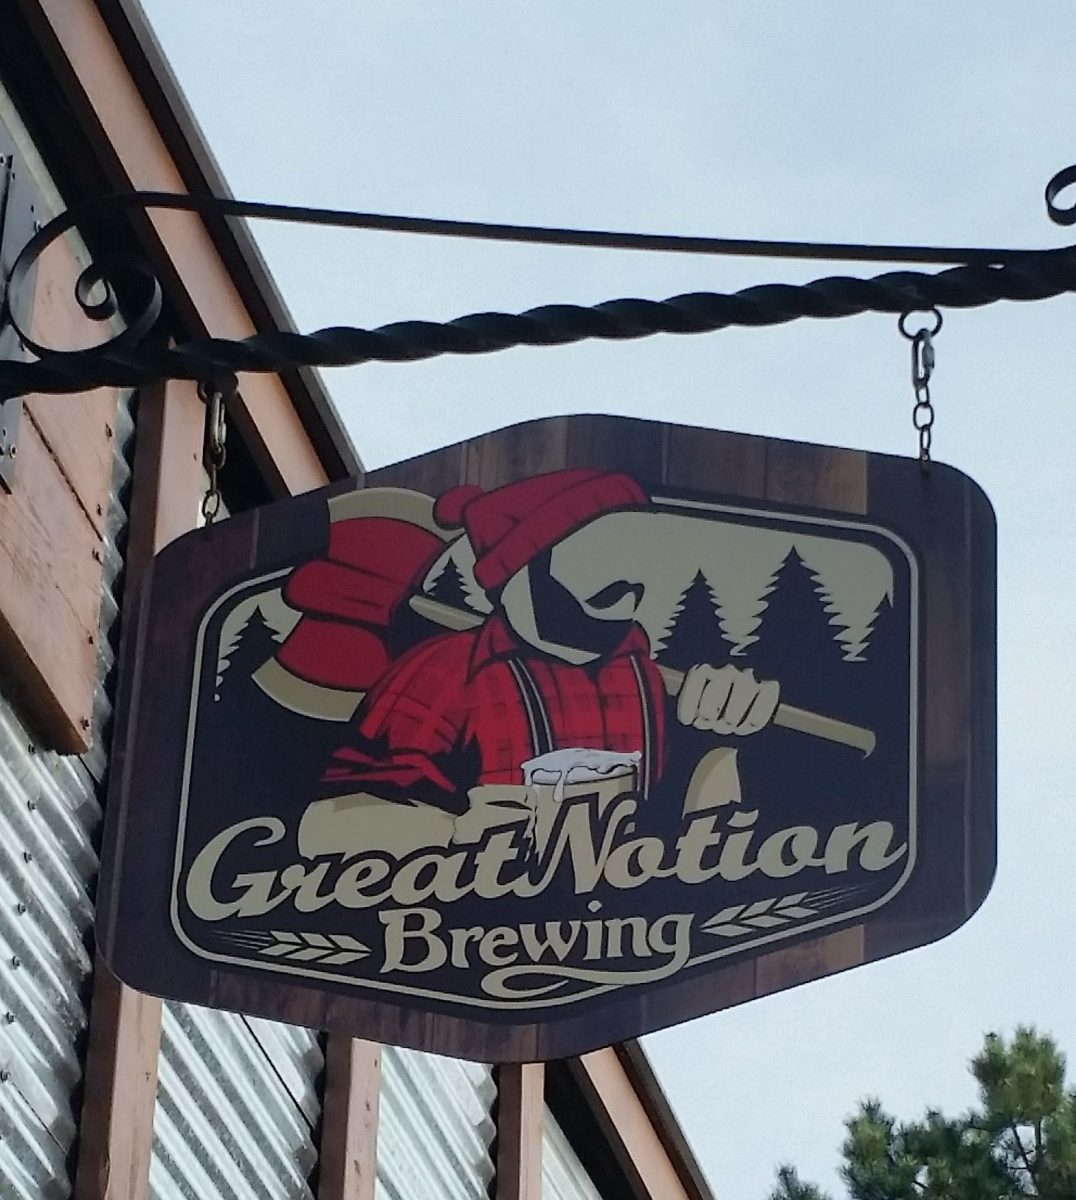 Great Notion Brewing: Koi Fusion: food, nightlife, and things to do in Portland